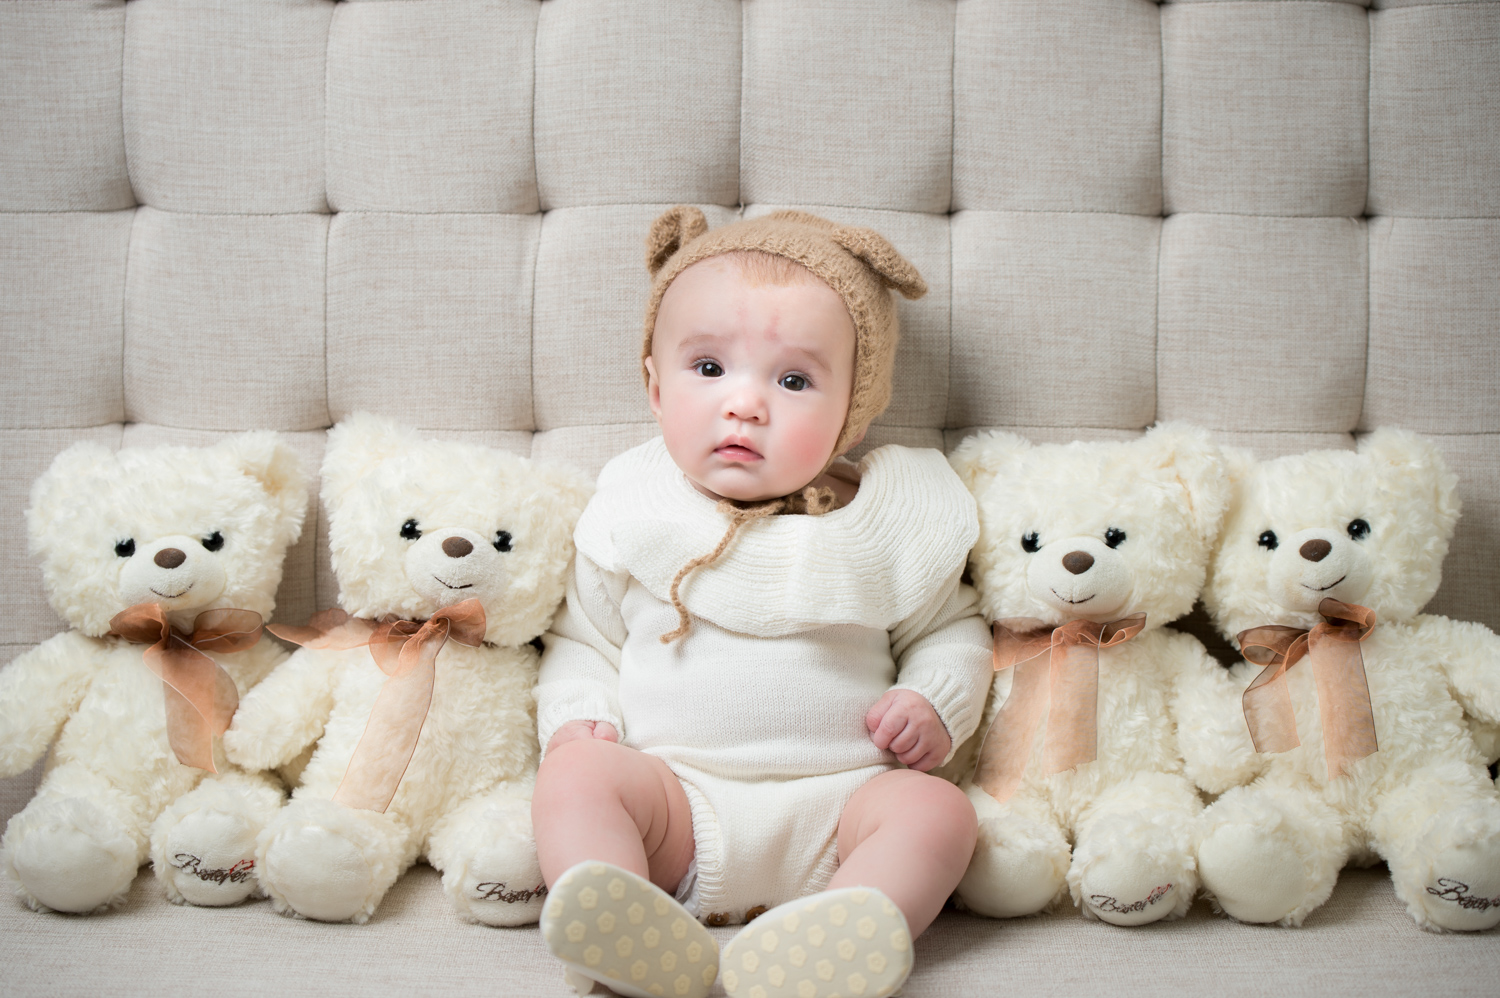 Layla sits in the middle of white teddy bears for her 100th day photo shoot.